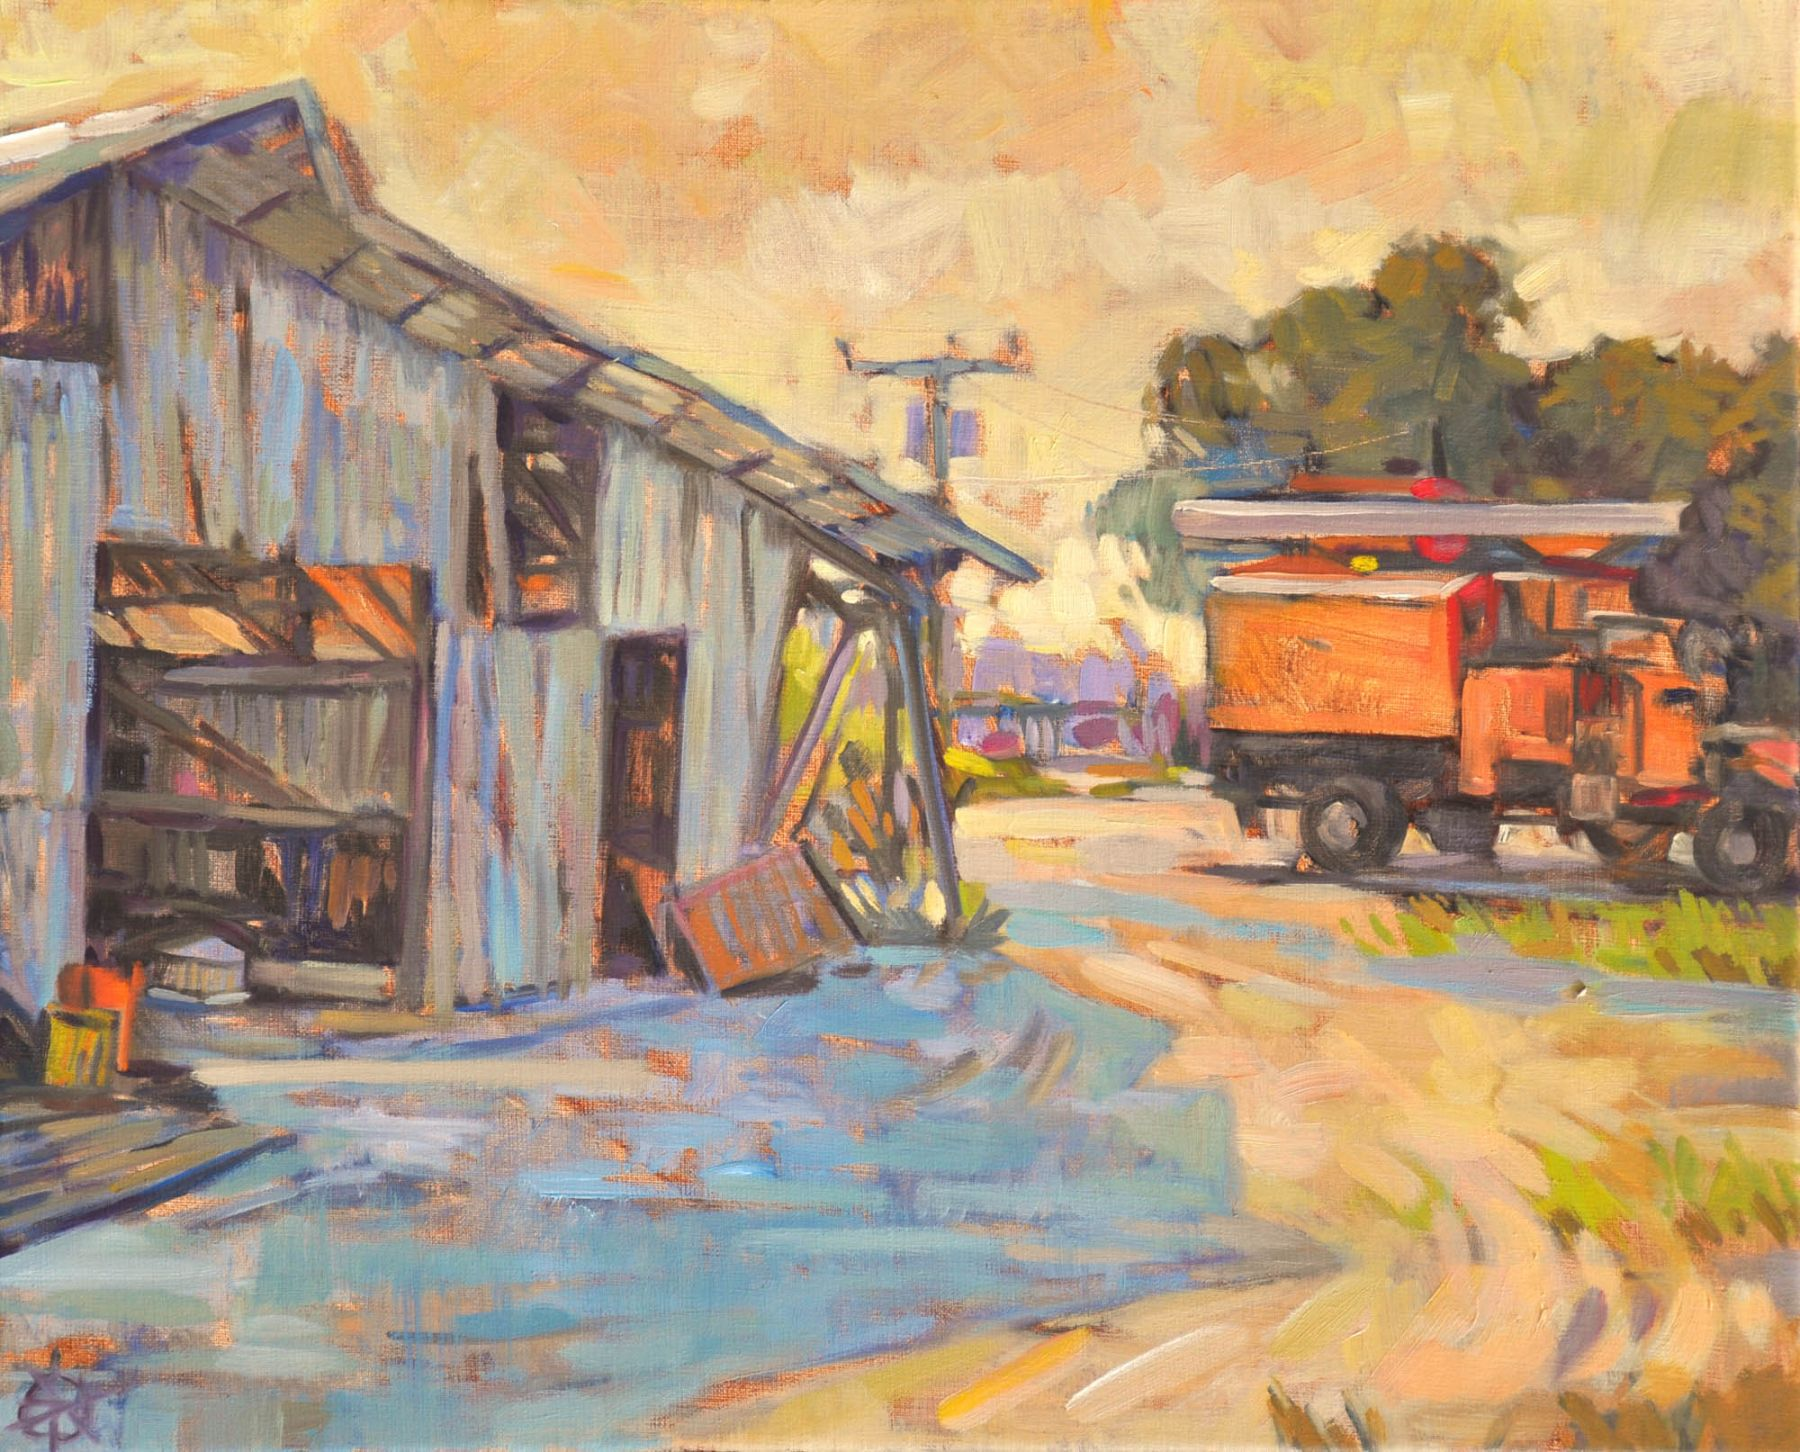 Meredith Brooks Abbott, Boom, Truck, and Barn, 2017